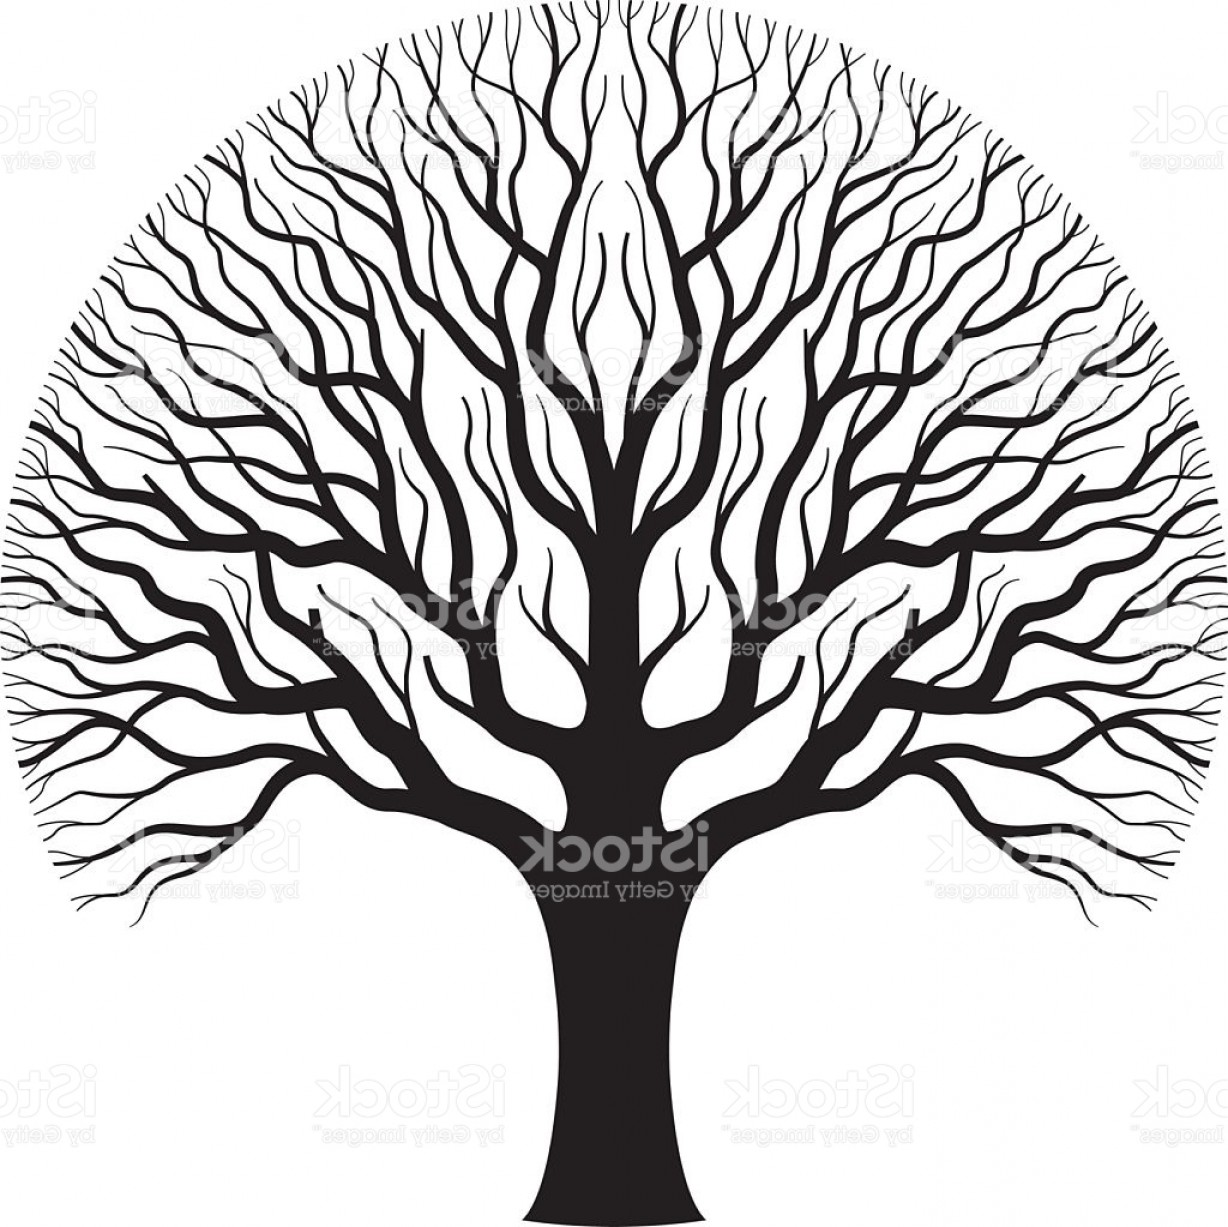 Oak Tree Silhouette Vector Graphics: Old Oak Tree Illustration Gm